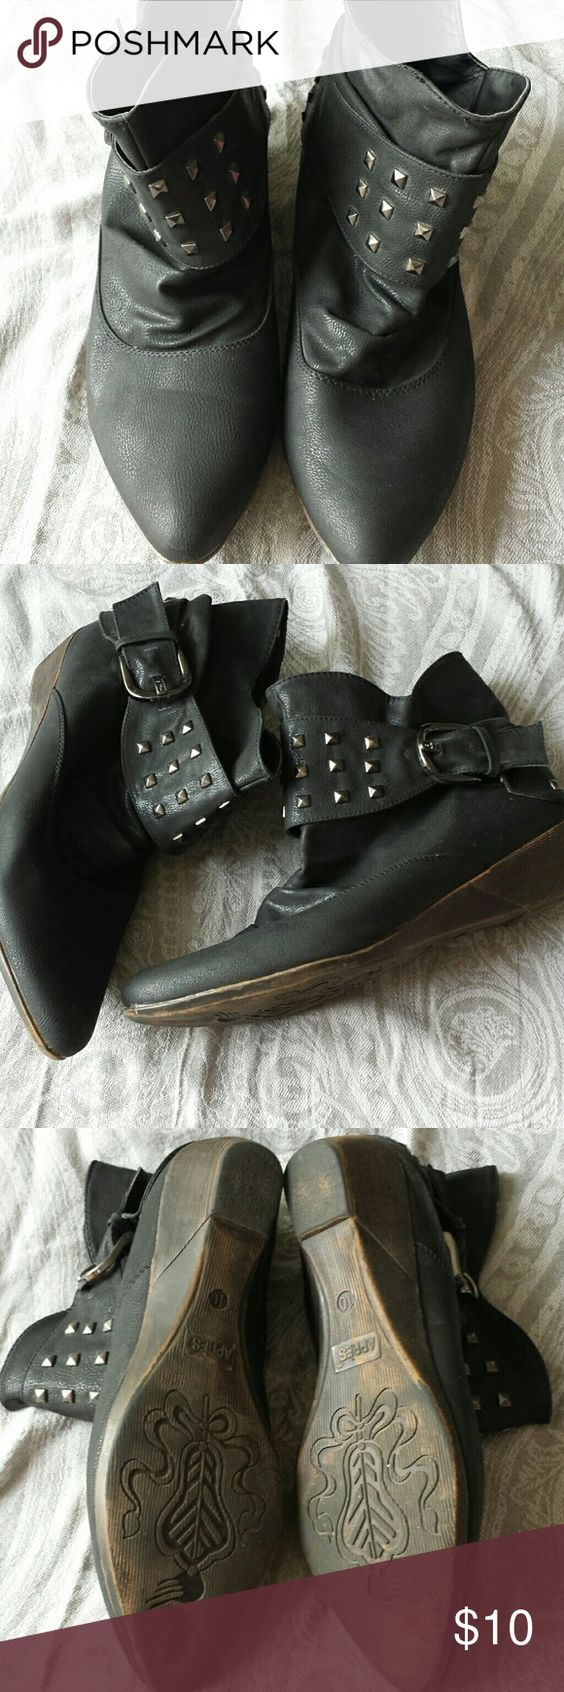 APRES low bootie  sz10 Blk with silvertone details on buckle and heel Gently worn APRES  Shoes Ankle Boots & Booties